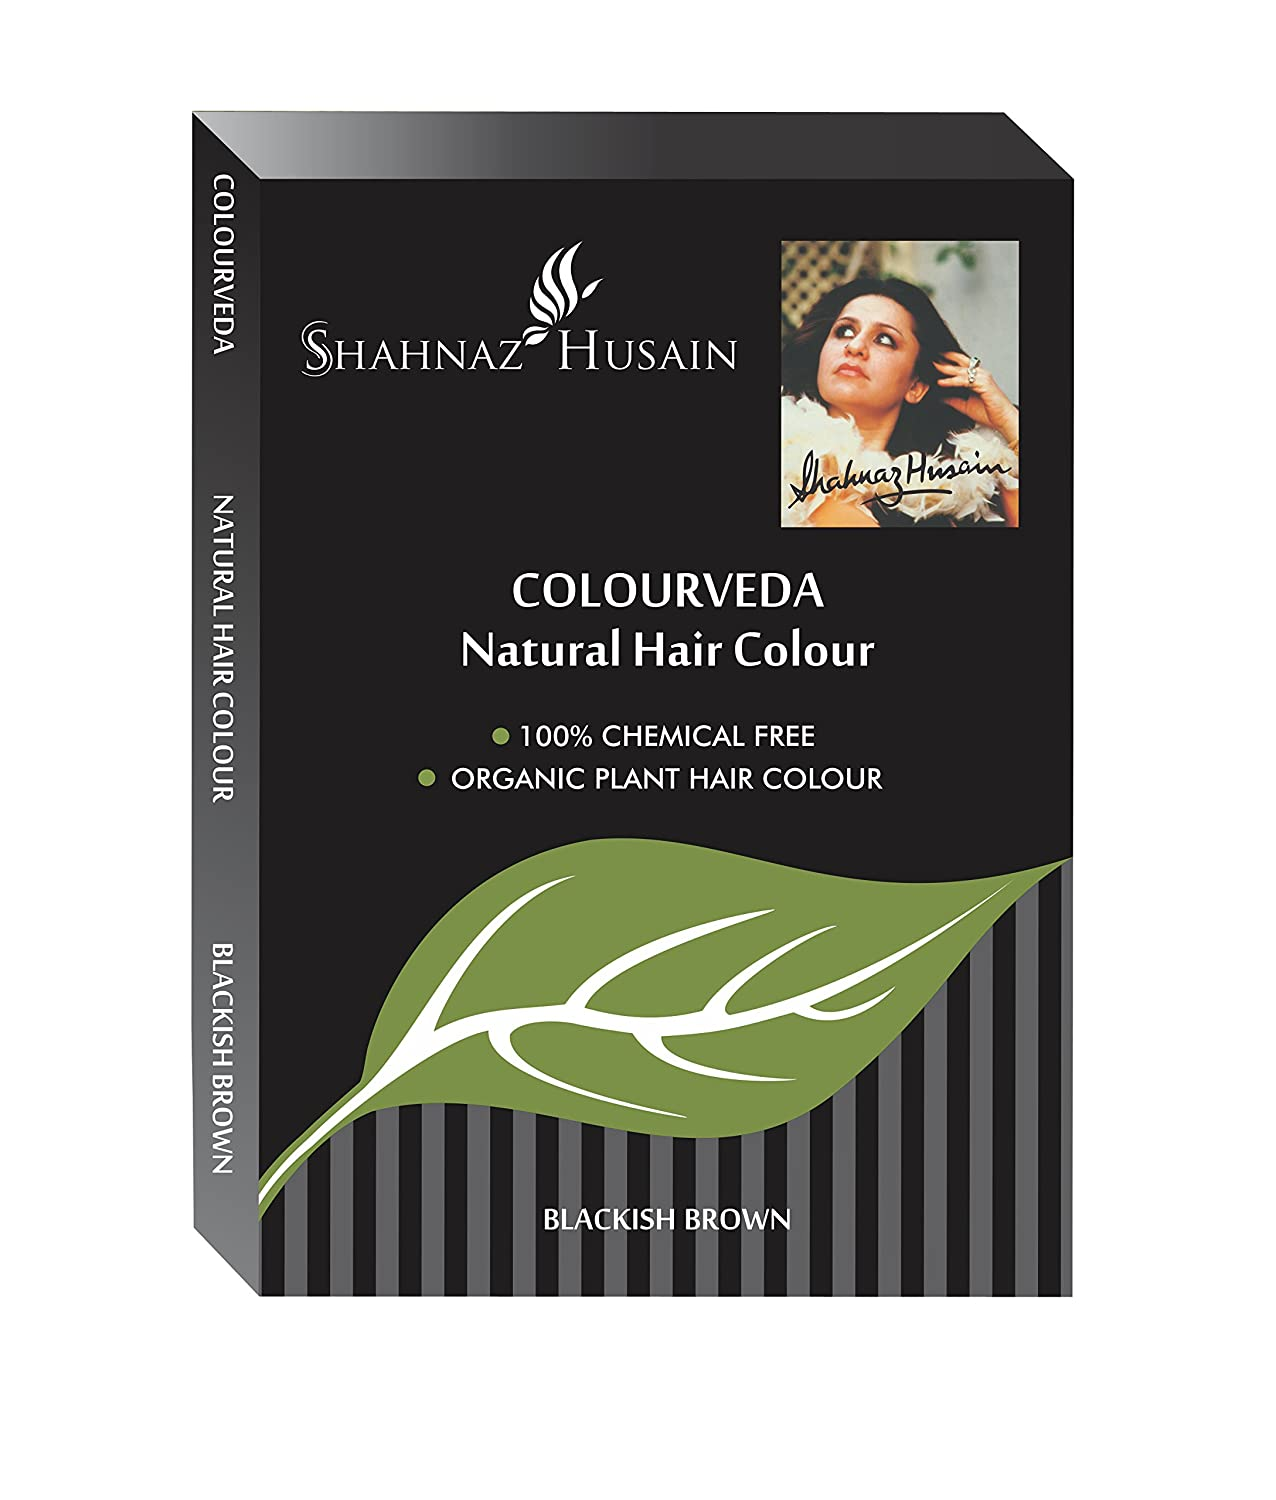 Amazon.com : Shahnaz Husain Colourveda Herbal Ayurvedic Natural Hair Color Latest International Packaging (3.5 oz / 100 g) : Beauty